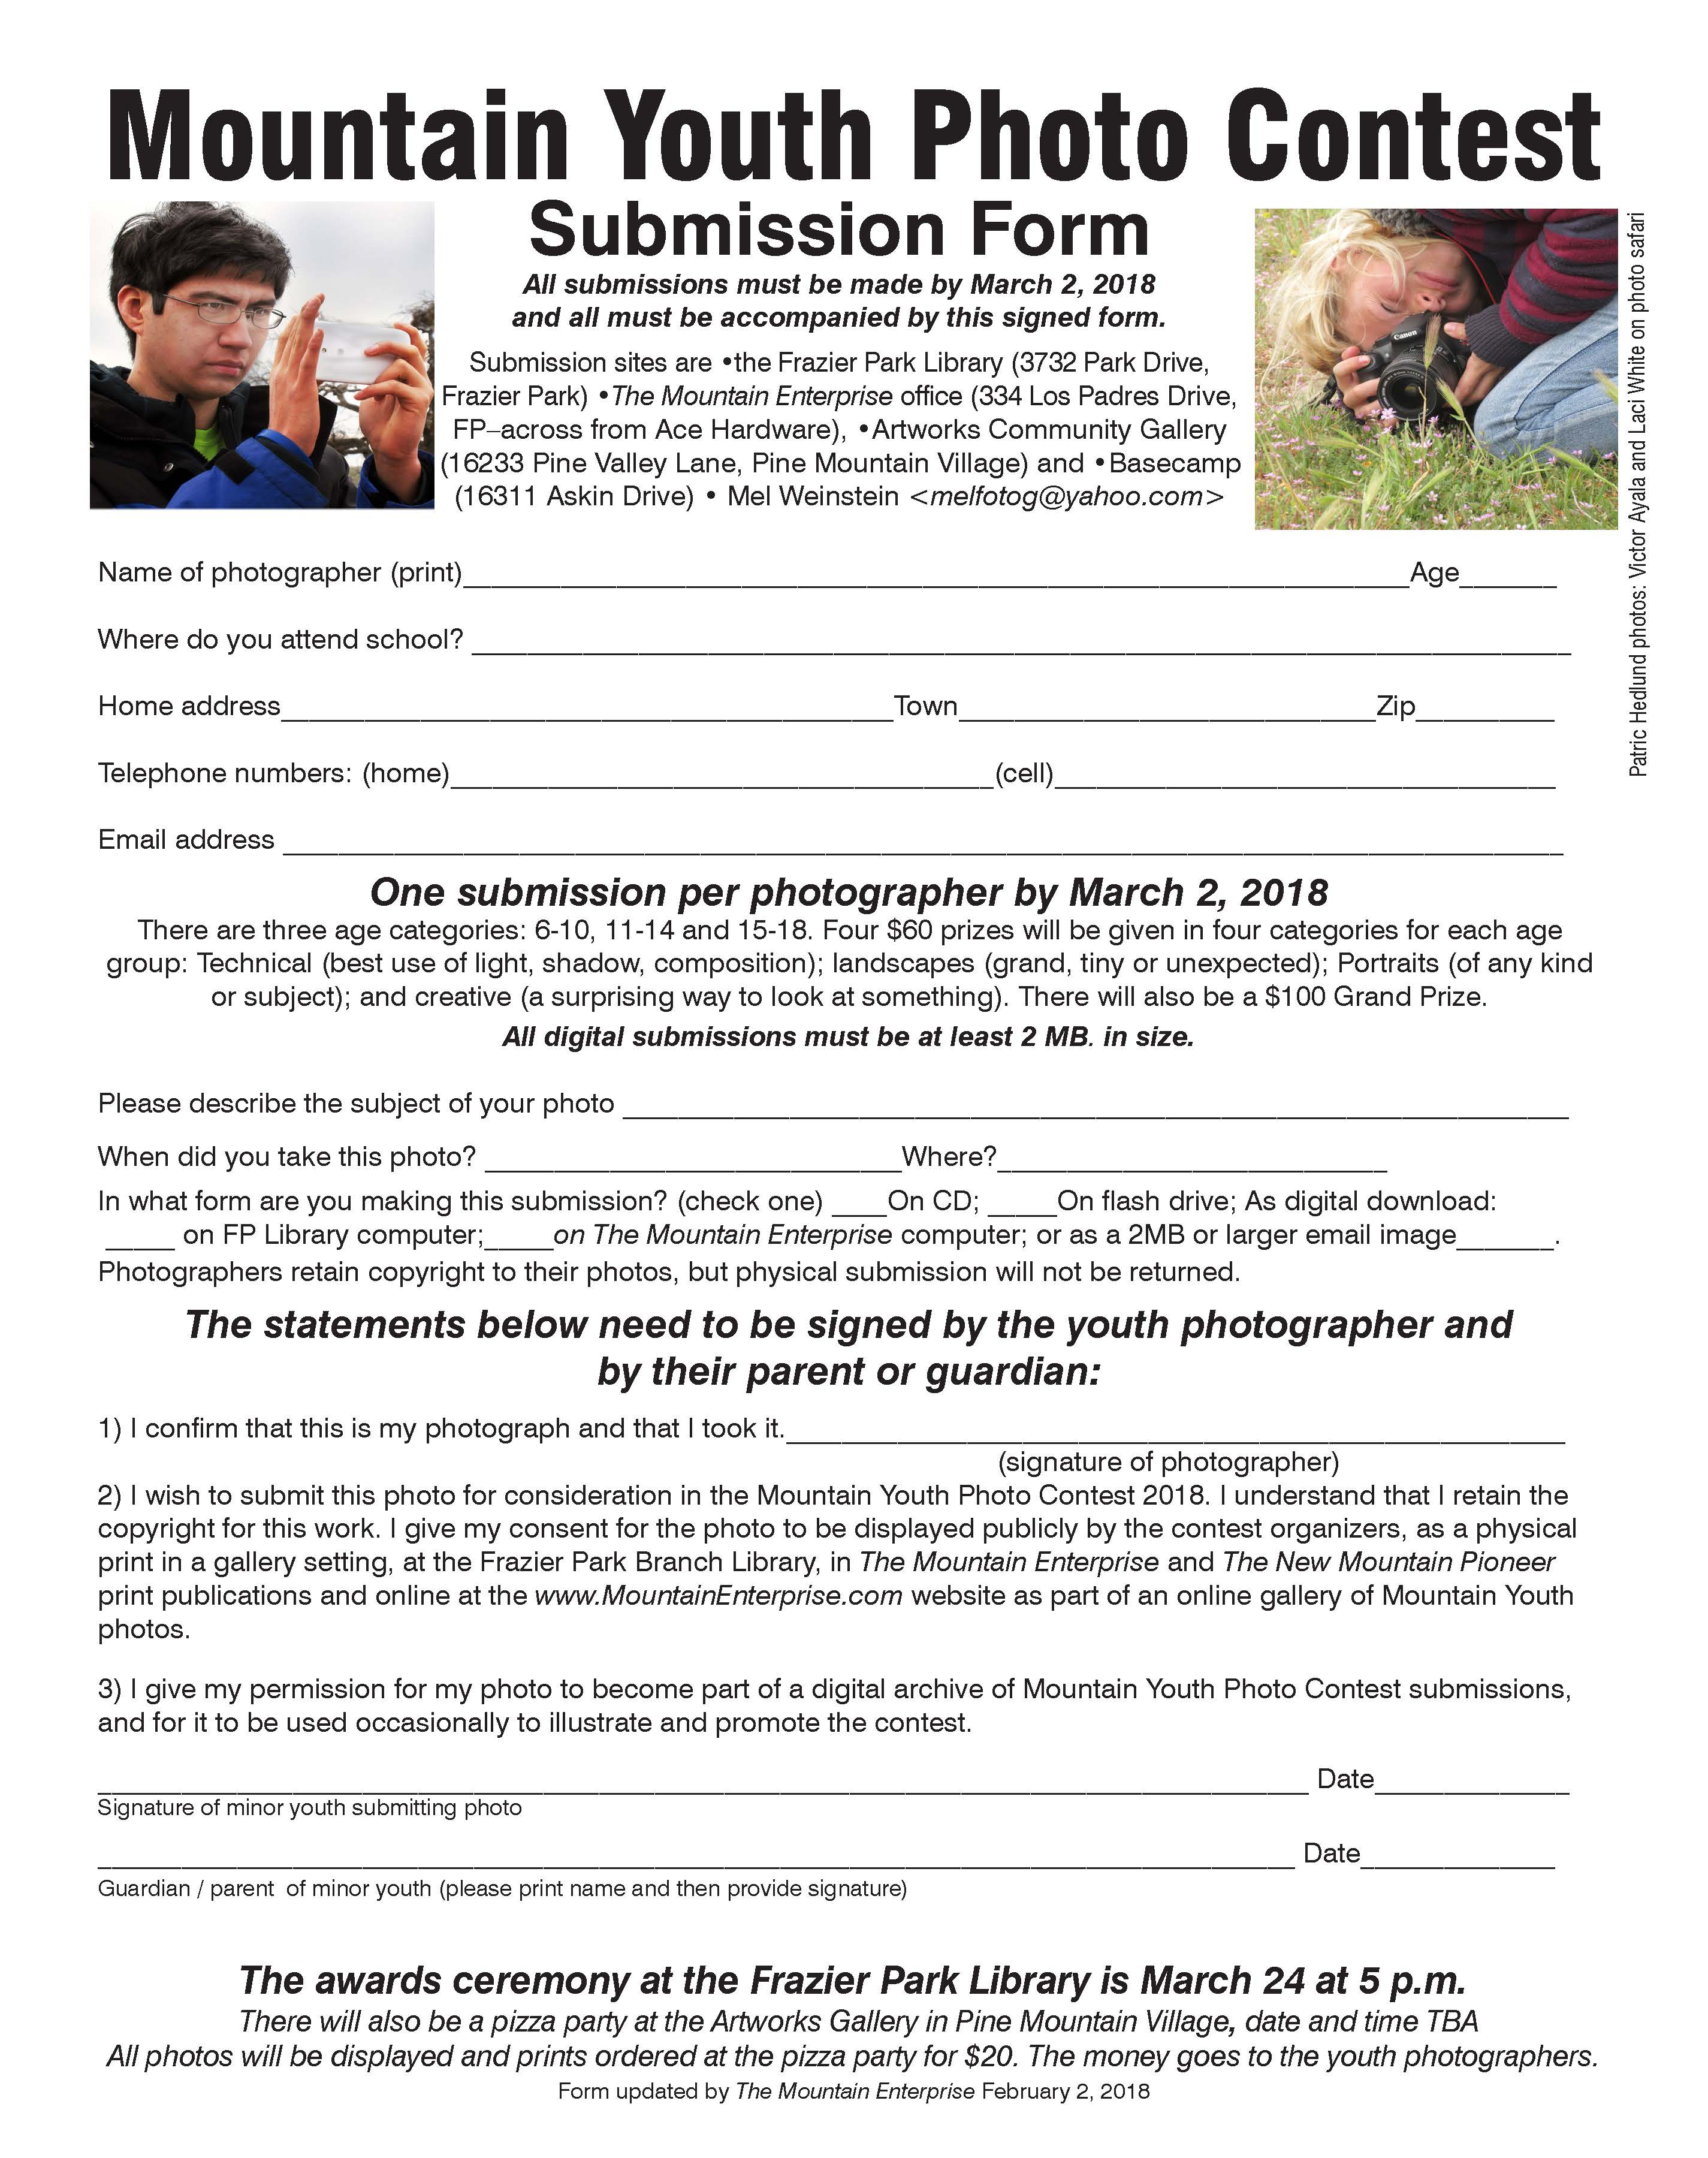 This is the submission form for the Mountain Youth Photo Contest. Your photo must be submitted with the completed form. Double click for a full size display which you can print out. Deadline for submissions is by March 2, 2018. Good luck!